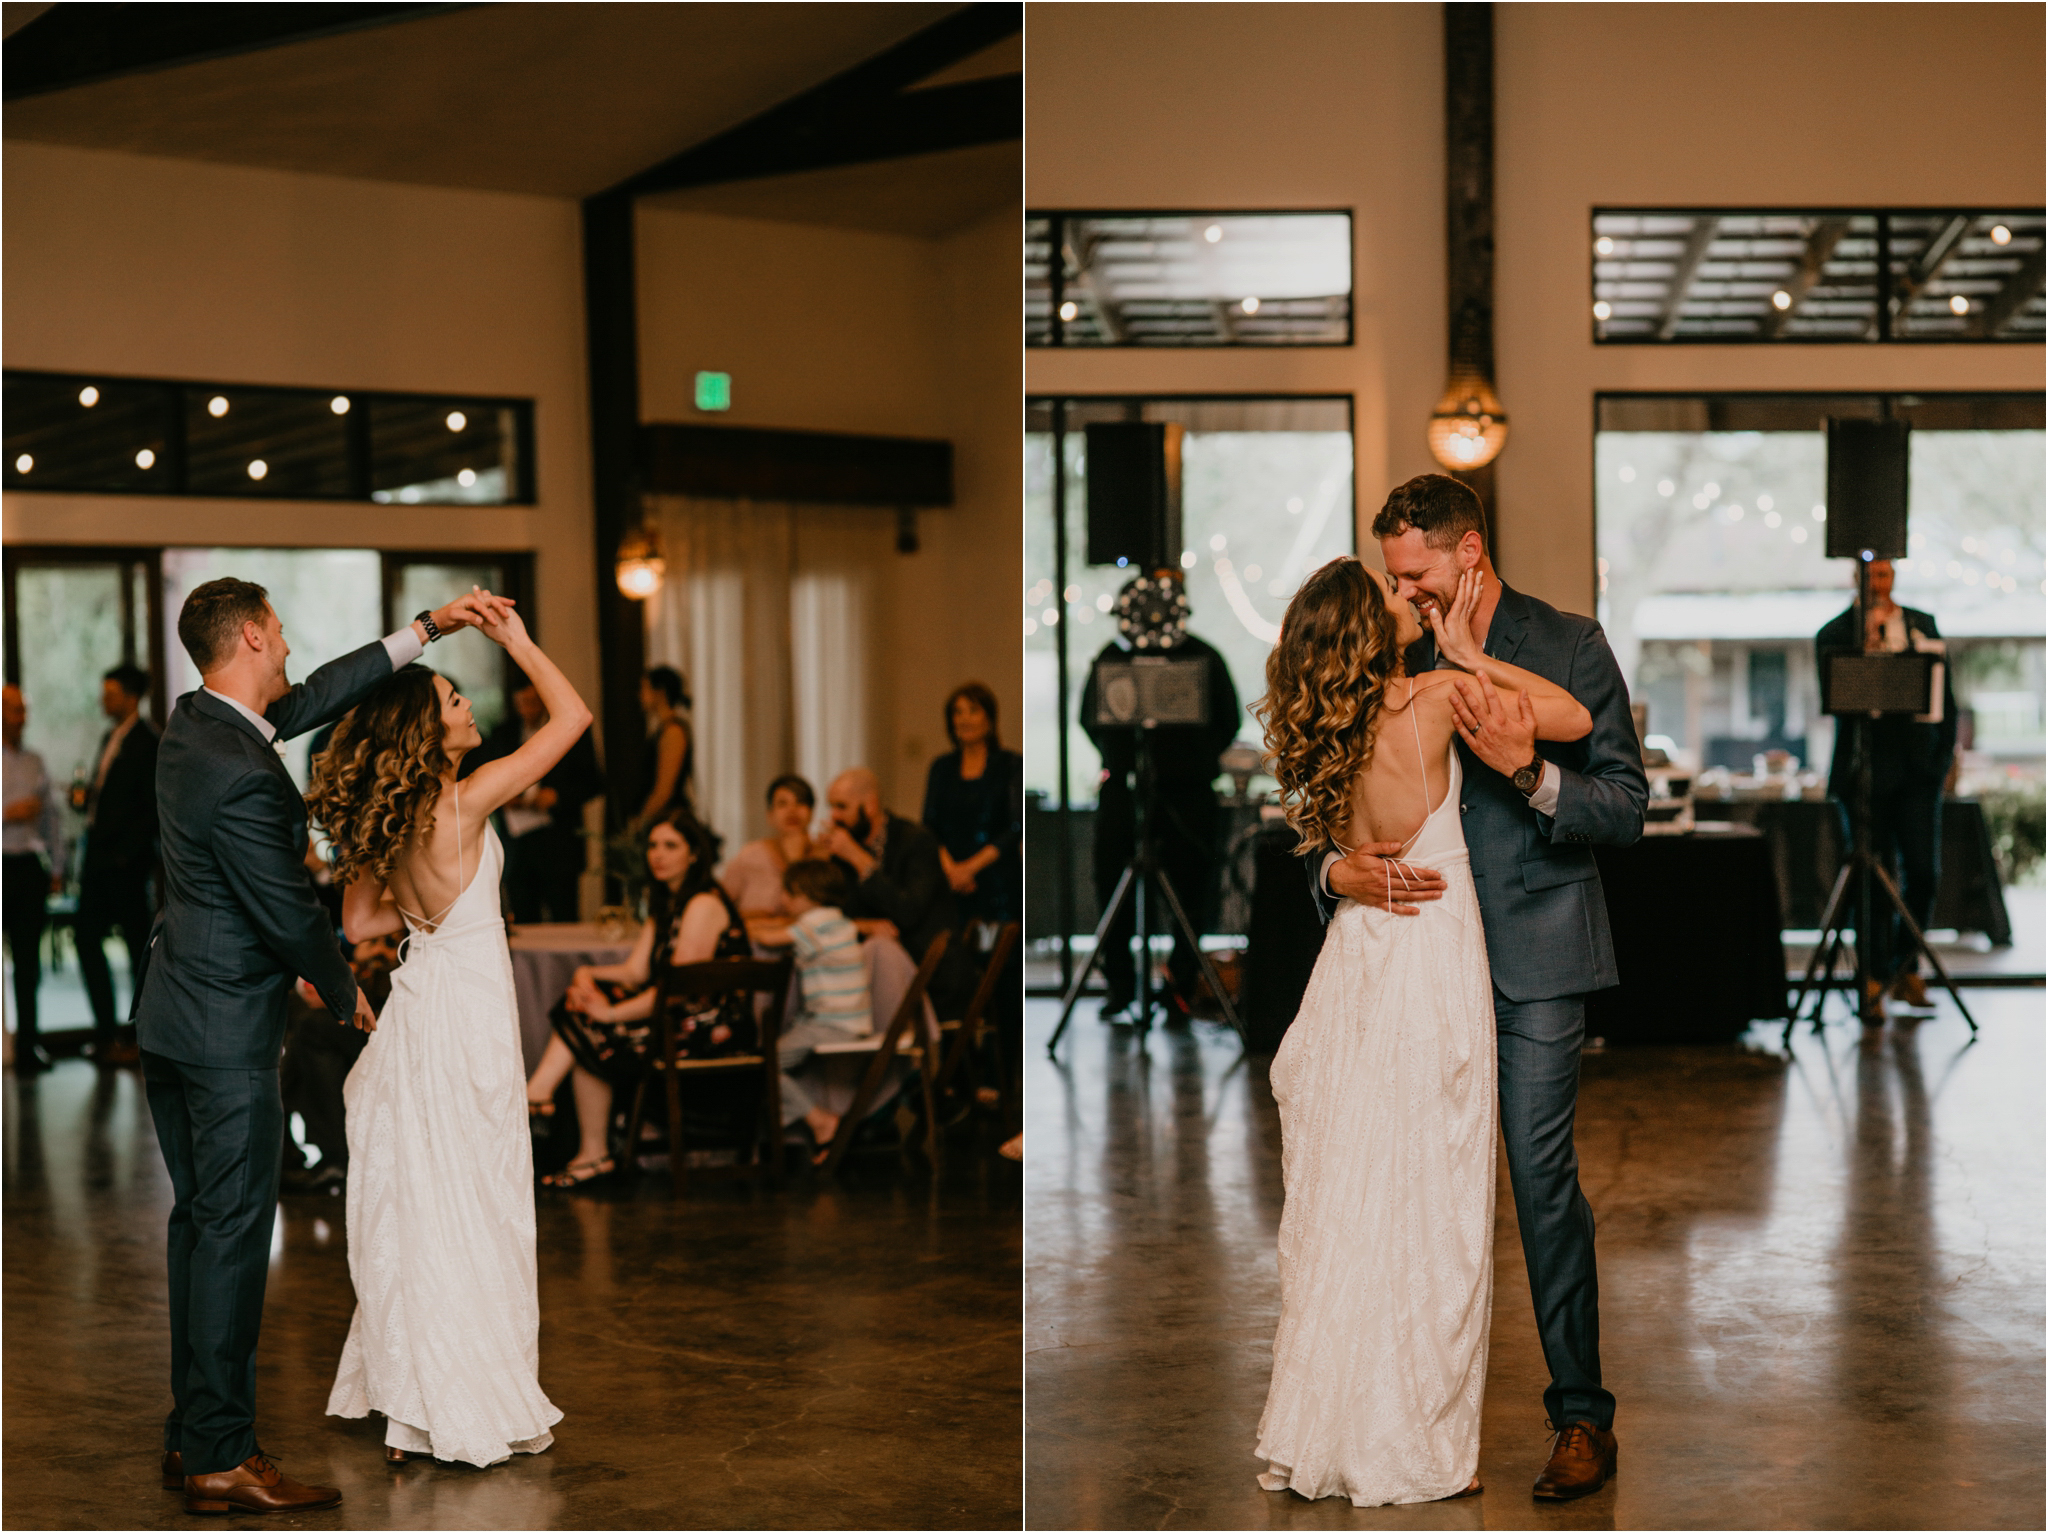 jillian-and-scott-pecan-springs-ranch-texas-and-washington-wedding-photographer-131.jpg